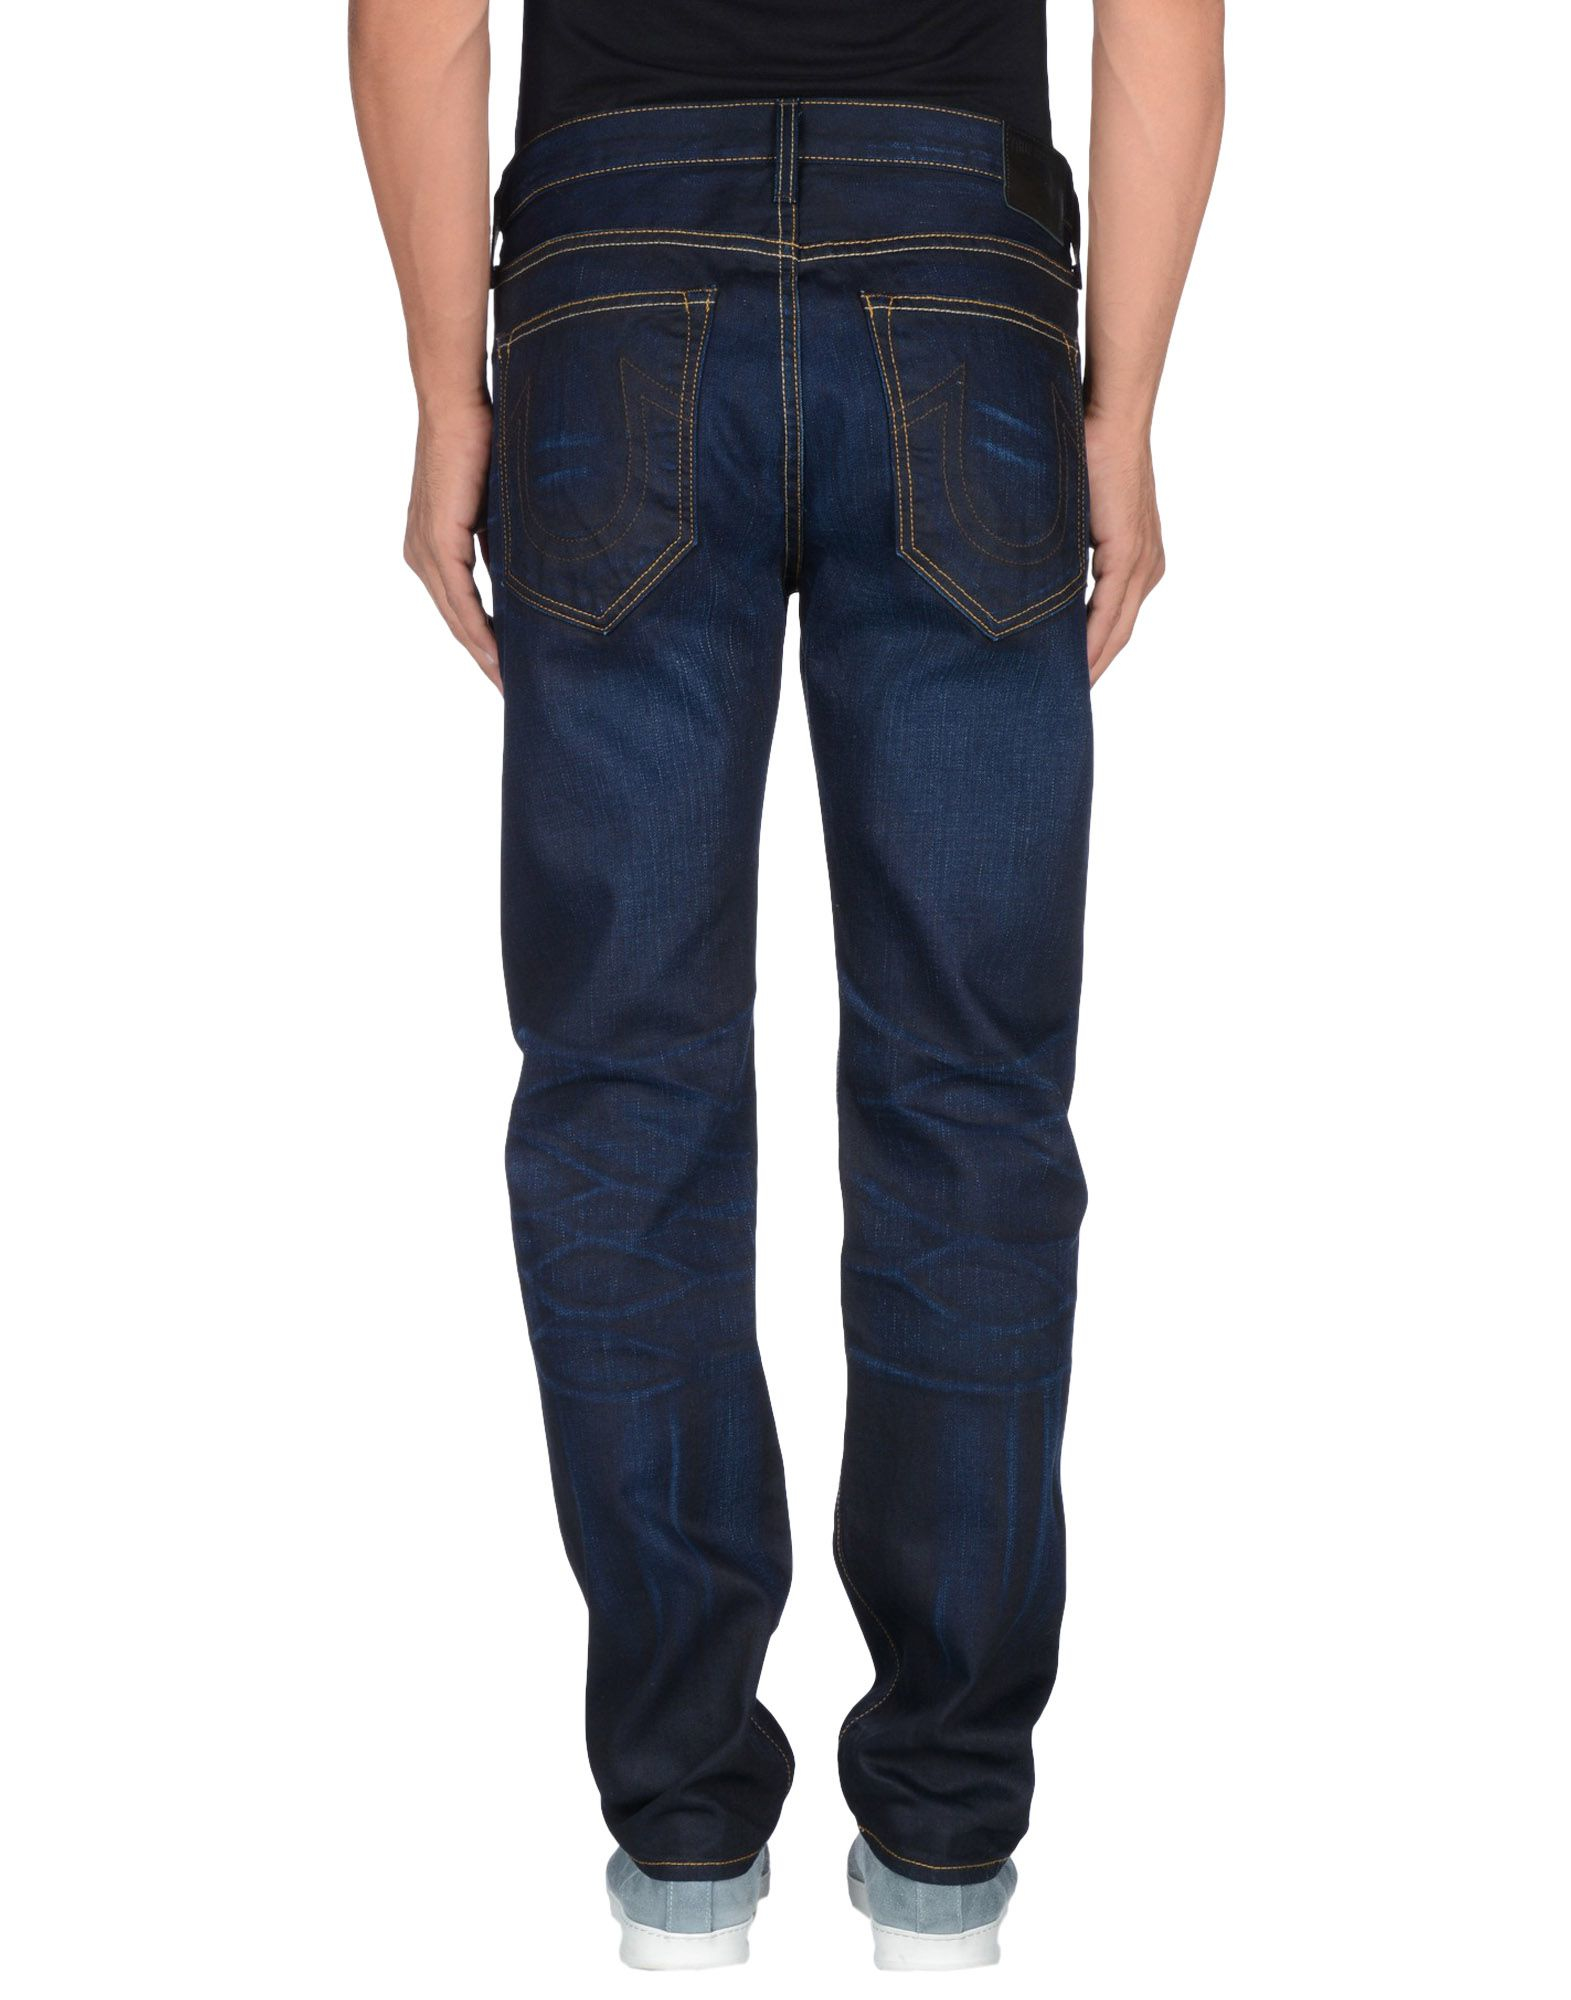 lyst true religion denim trousers in blue for men. Black Bedroom Furniture Sets. Home Design Ideas